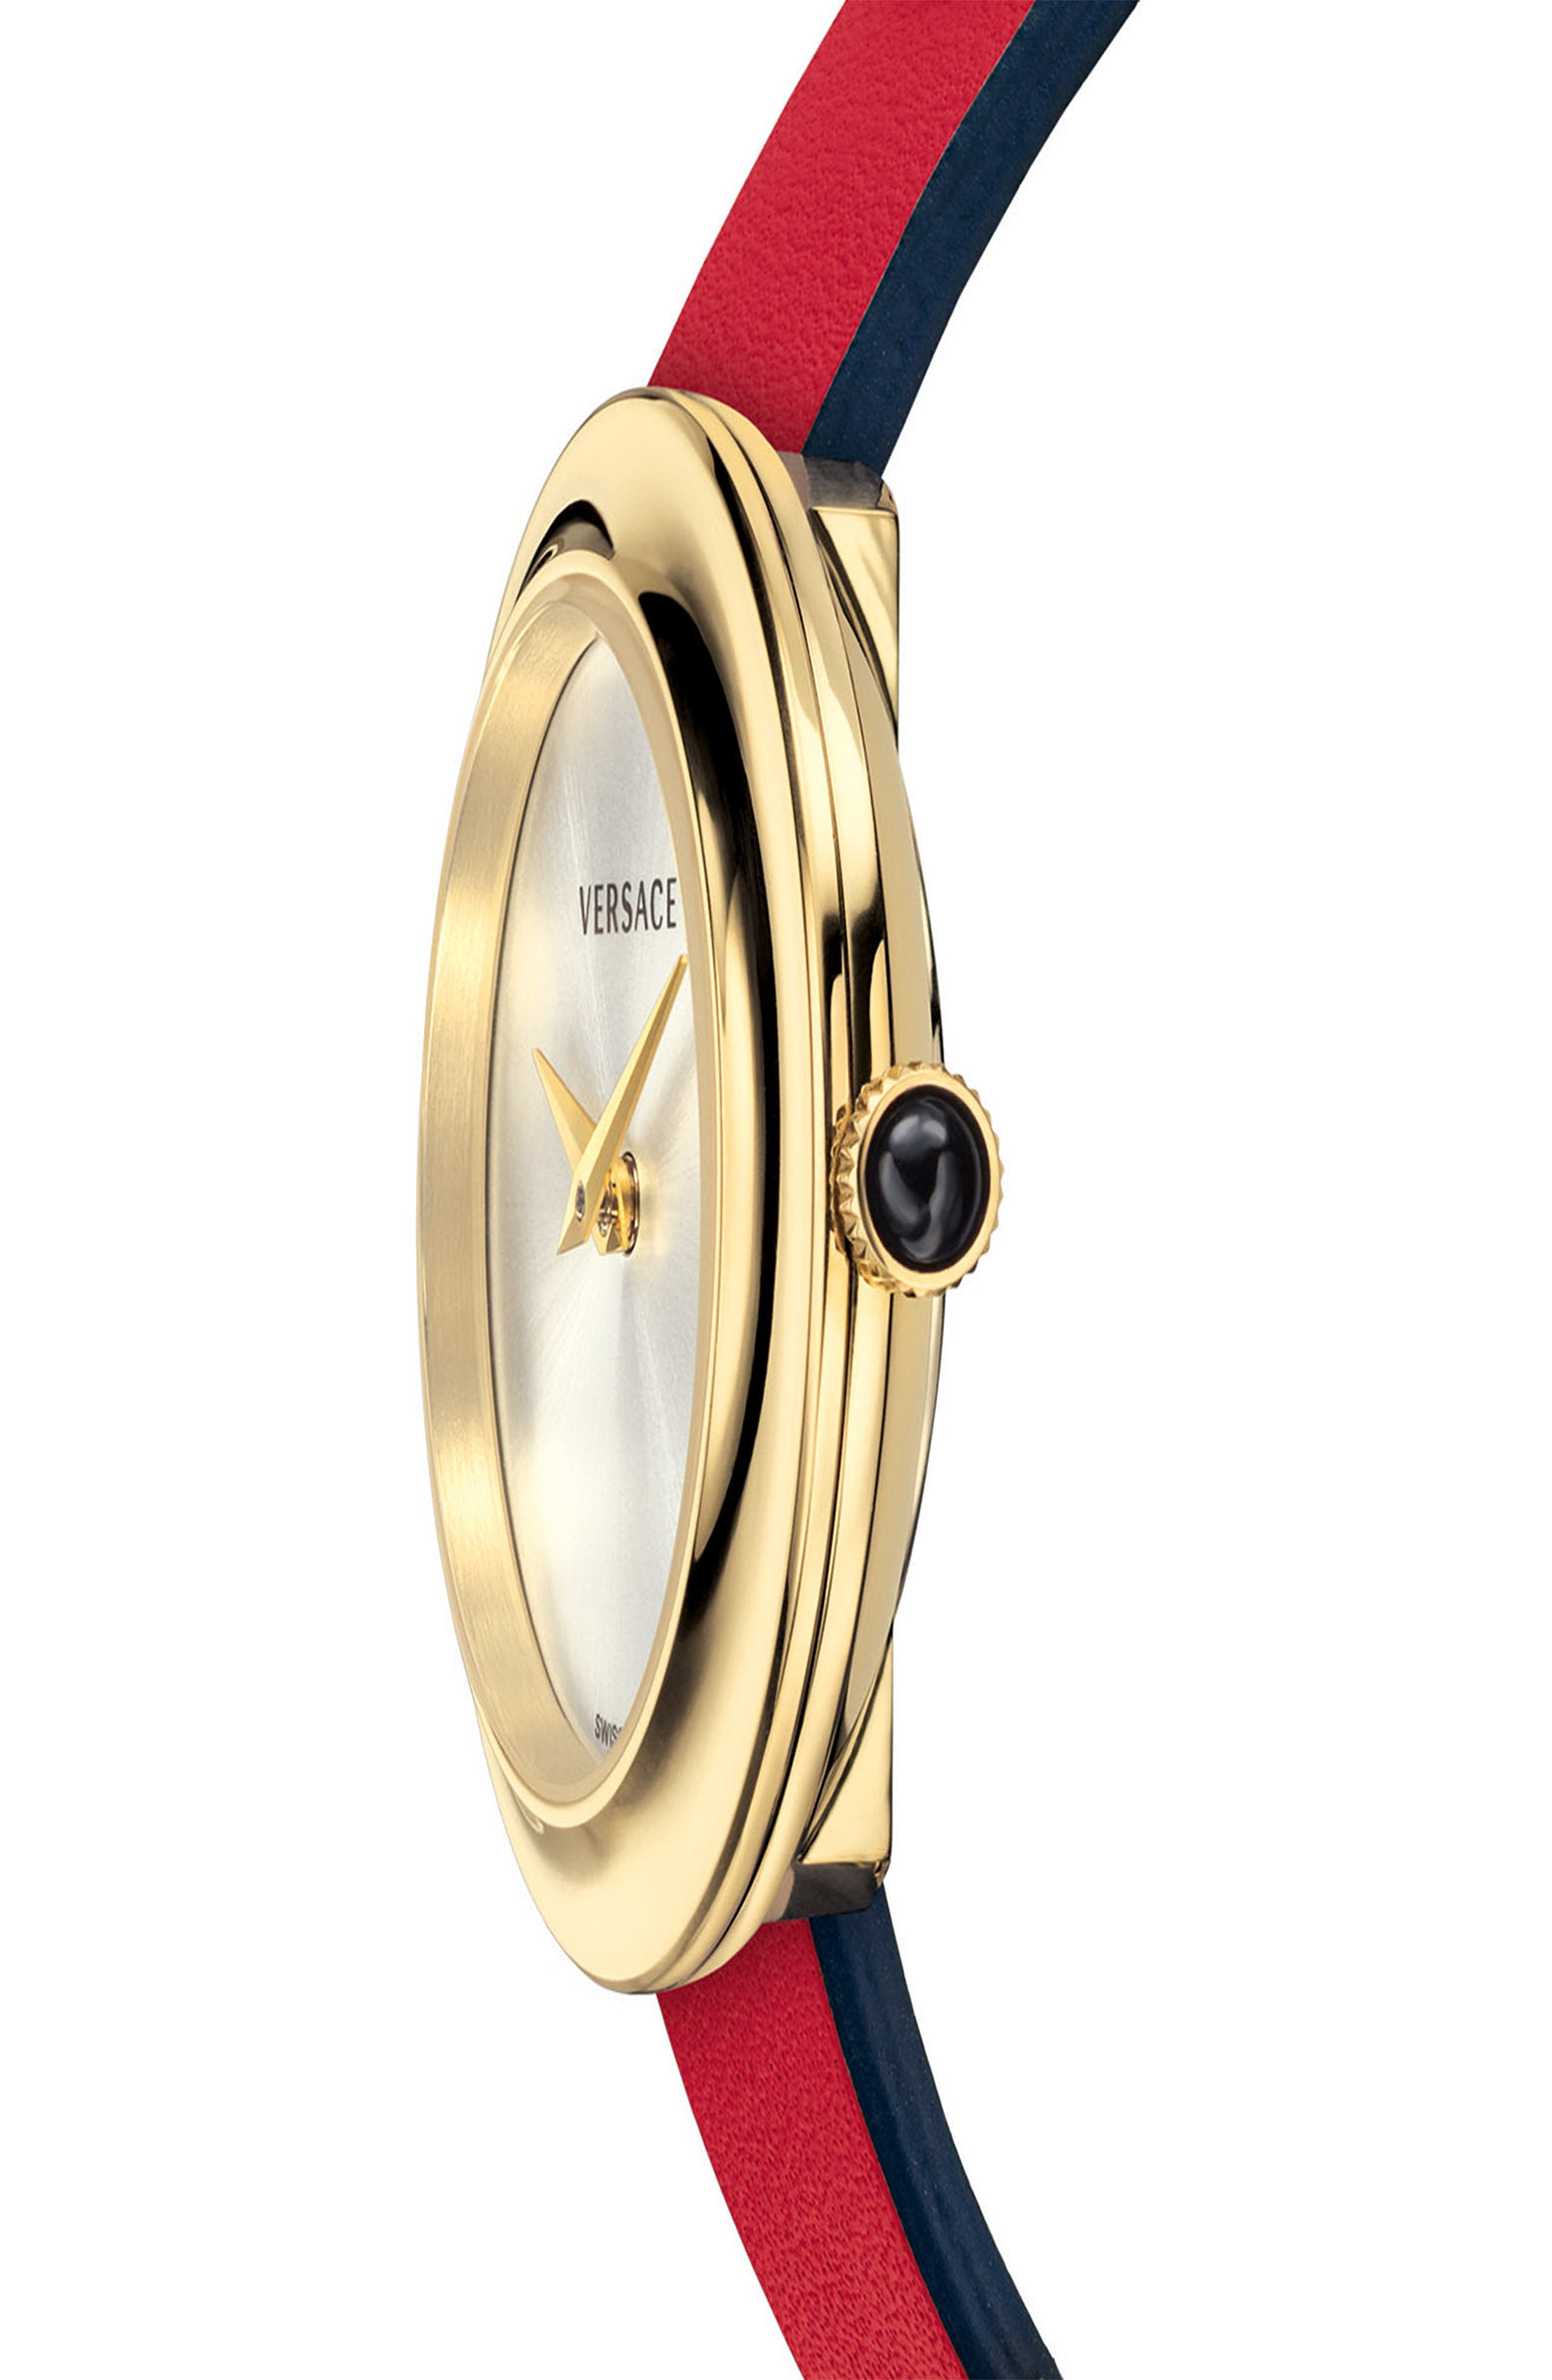 VERSACE, V-Flare Double Wrap Leather Strap Watch, 28mm, Alternate thumbnail 4, color, RED/ SILVER/ GOLD